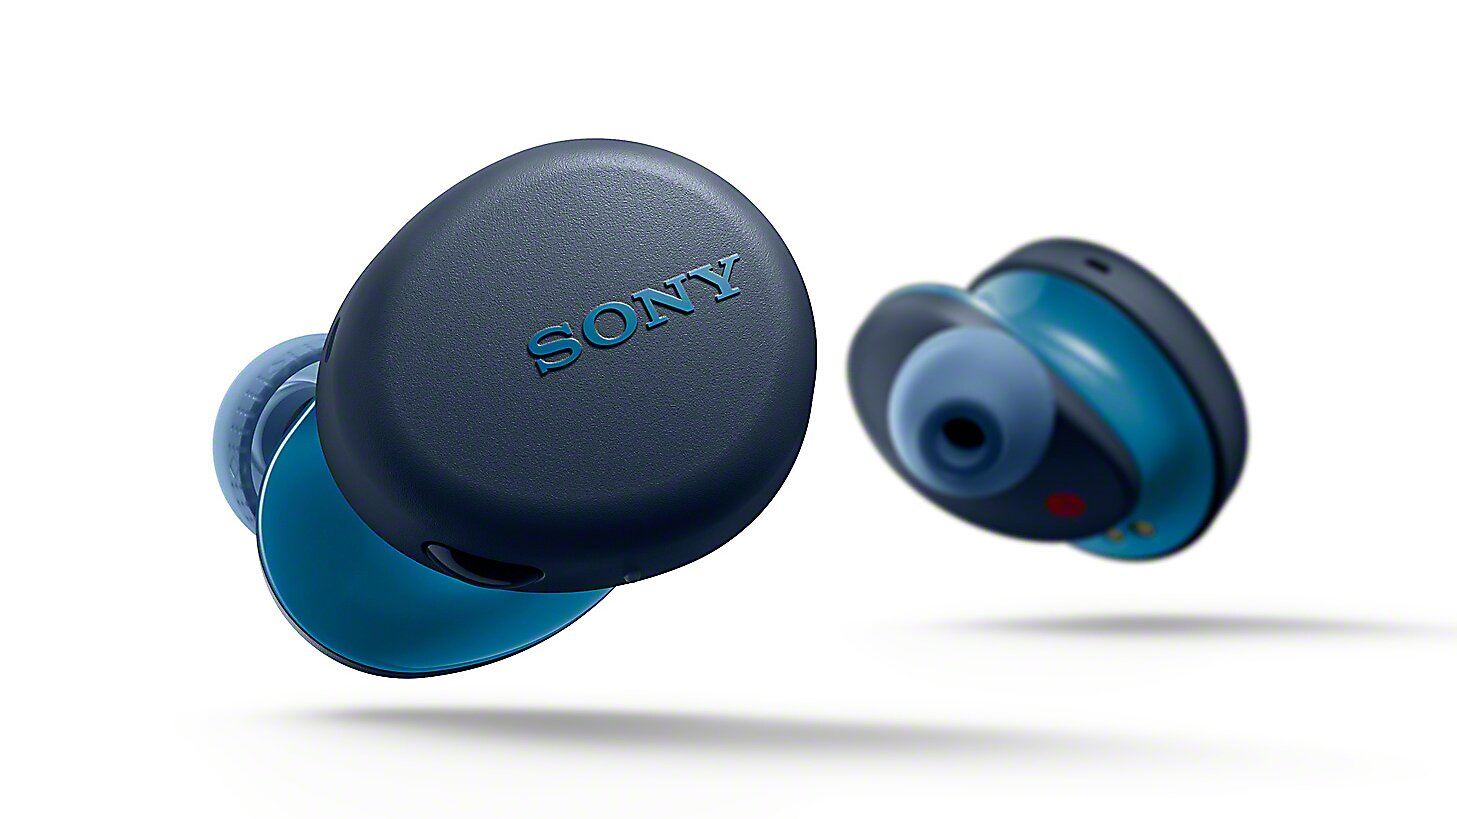 Sony brings new TWS earbuds to take on AirPods, focuses on audio quality supremely